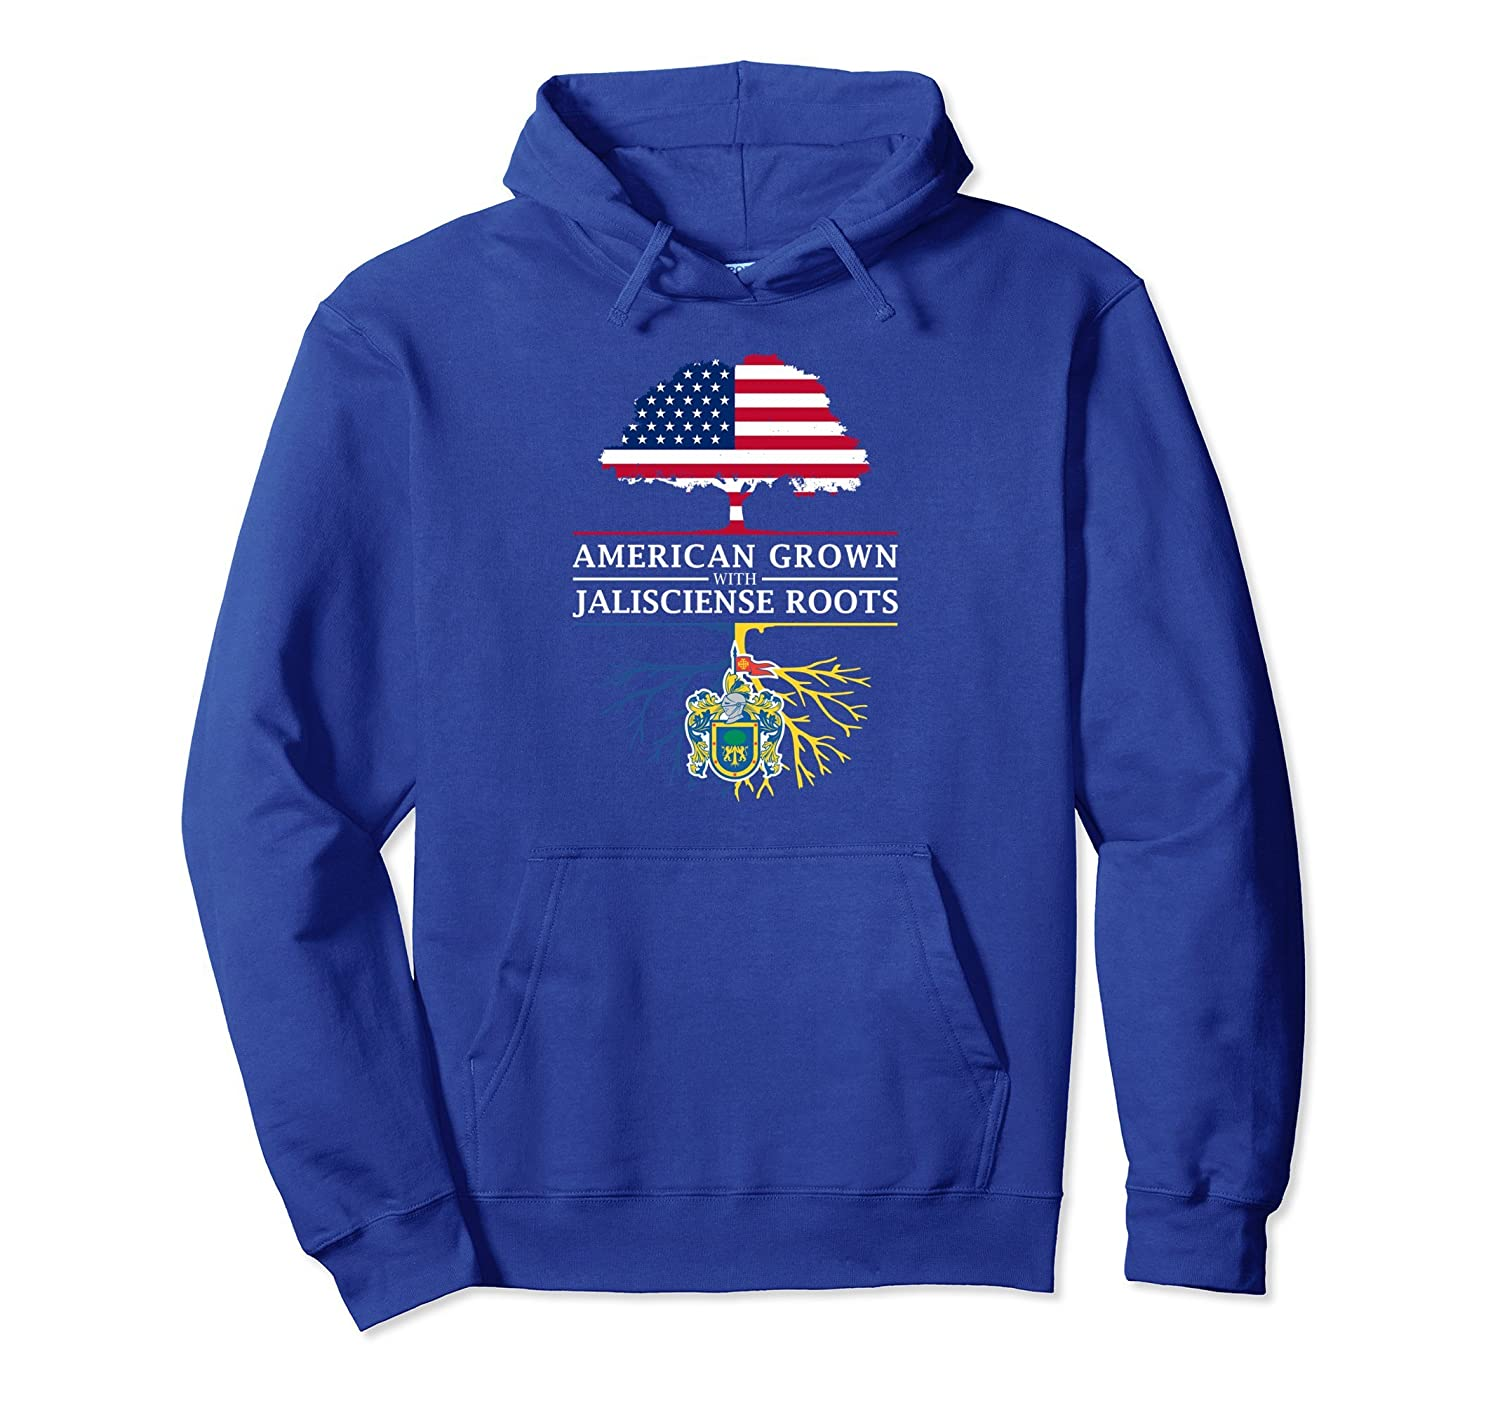 American Grown with Jalisciense Roots - Jalisco Hoodie-ah my shirt one gift